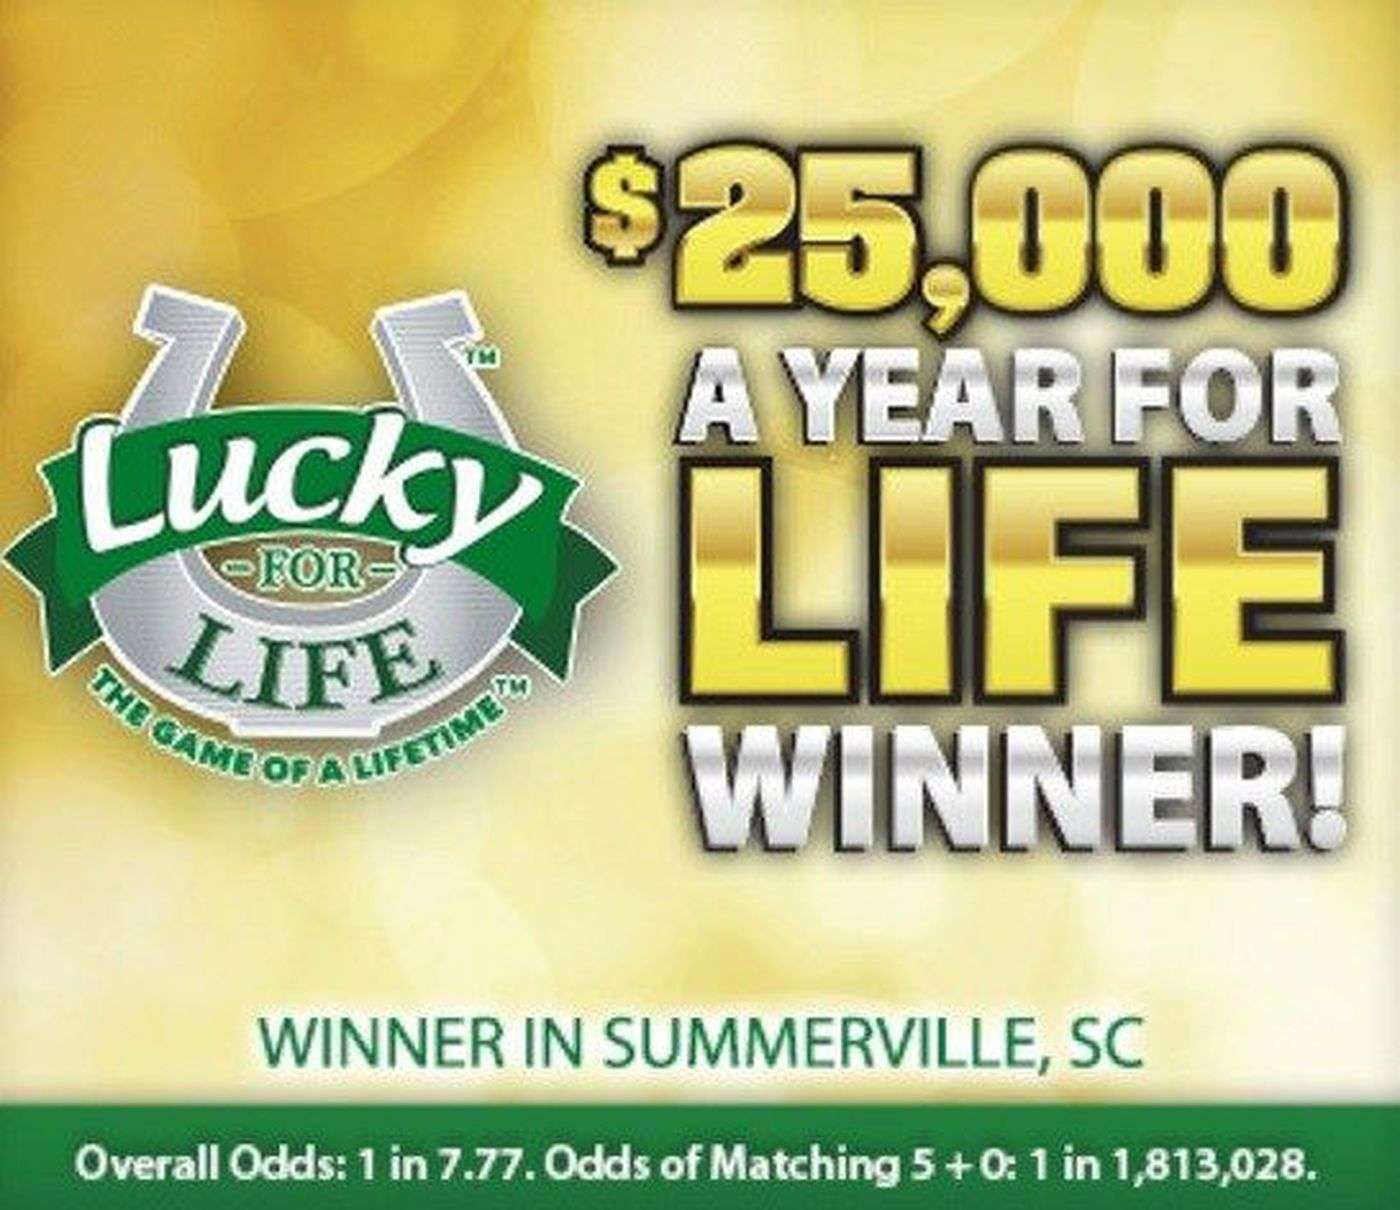 Winning lottery ticket purchased at Summerville gas station